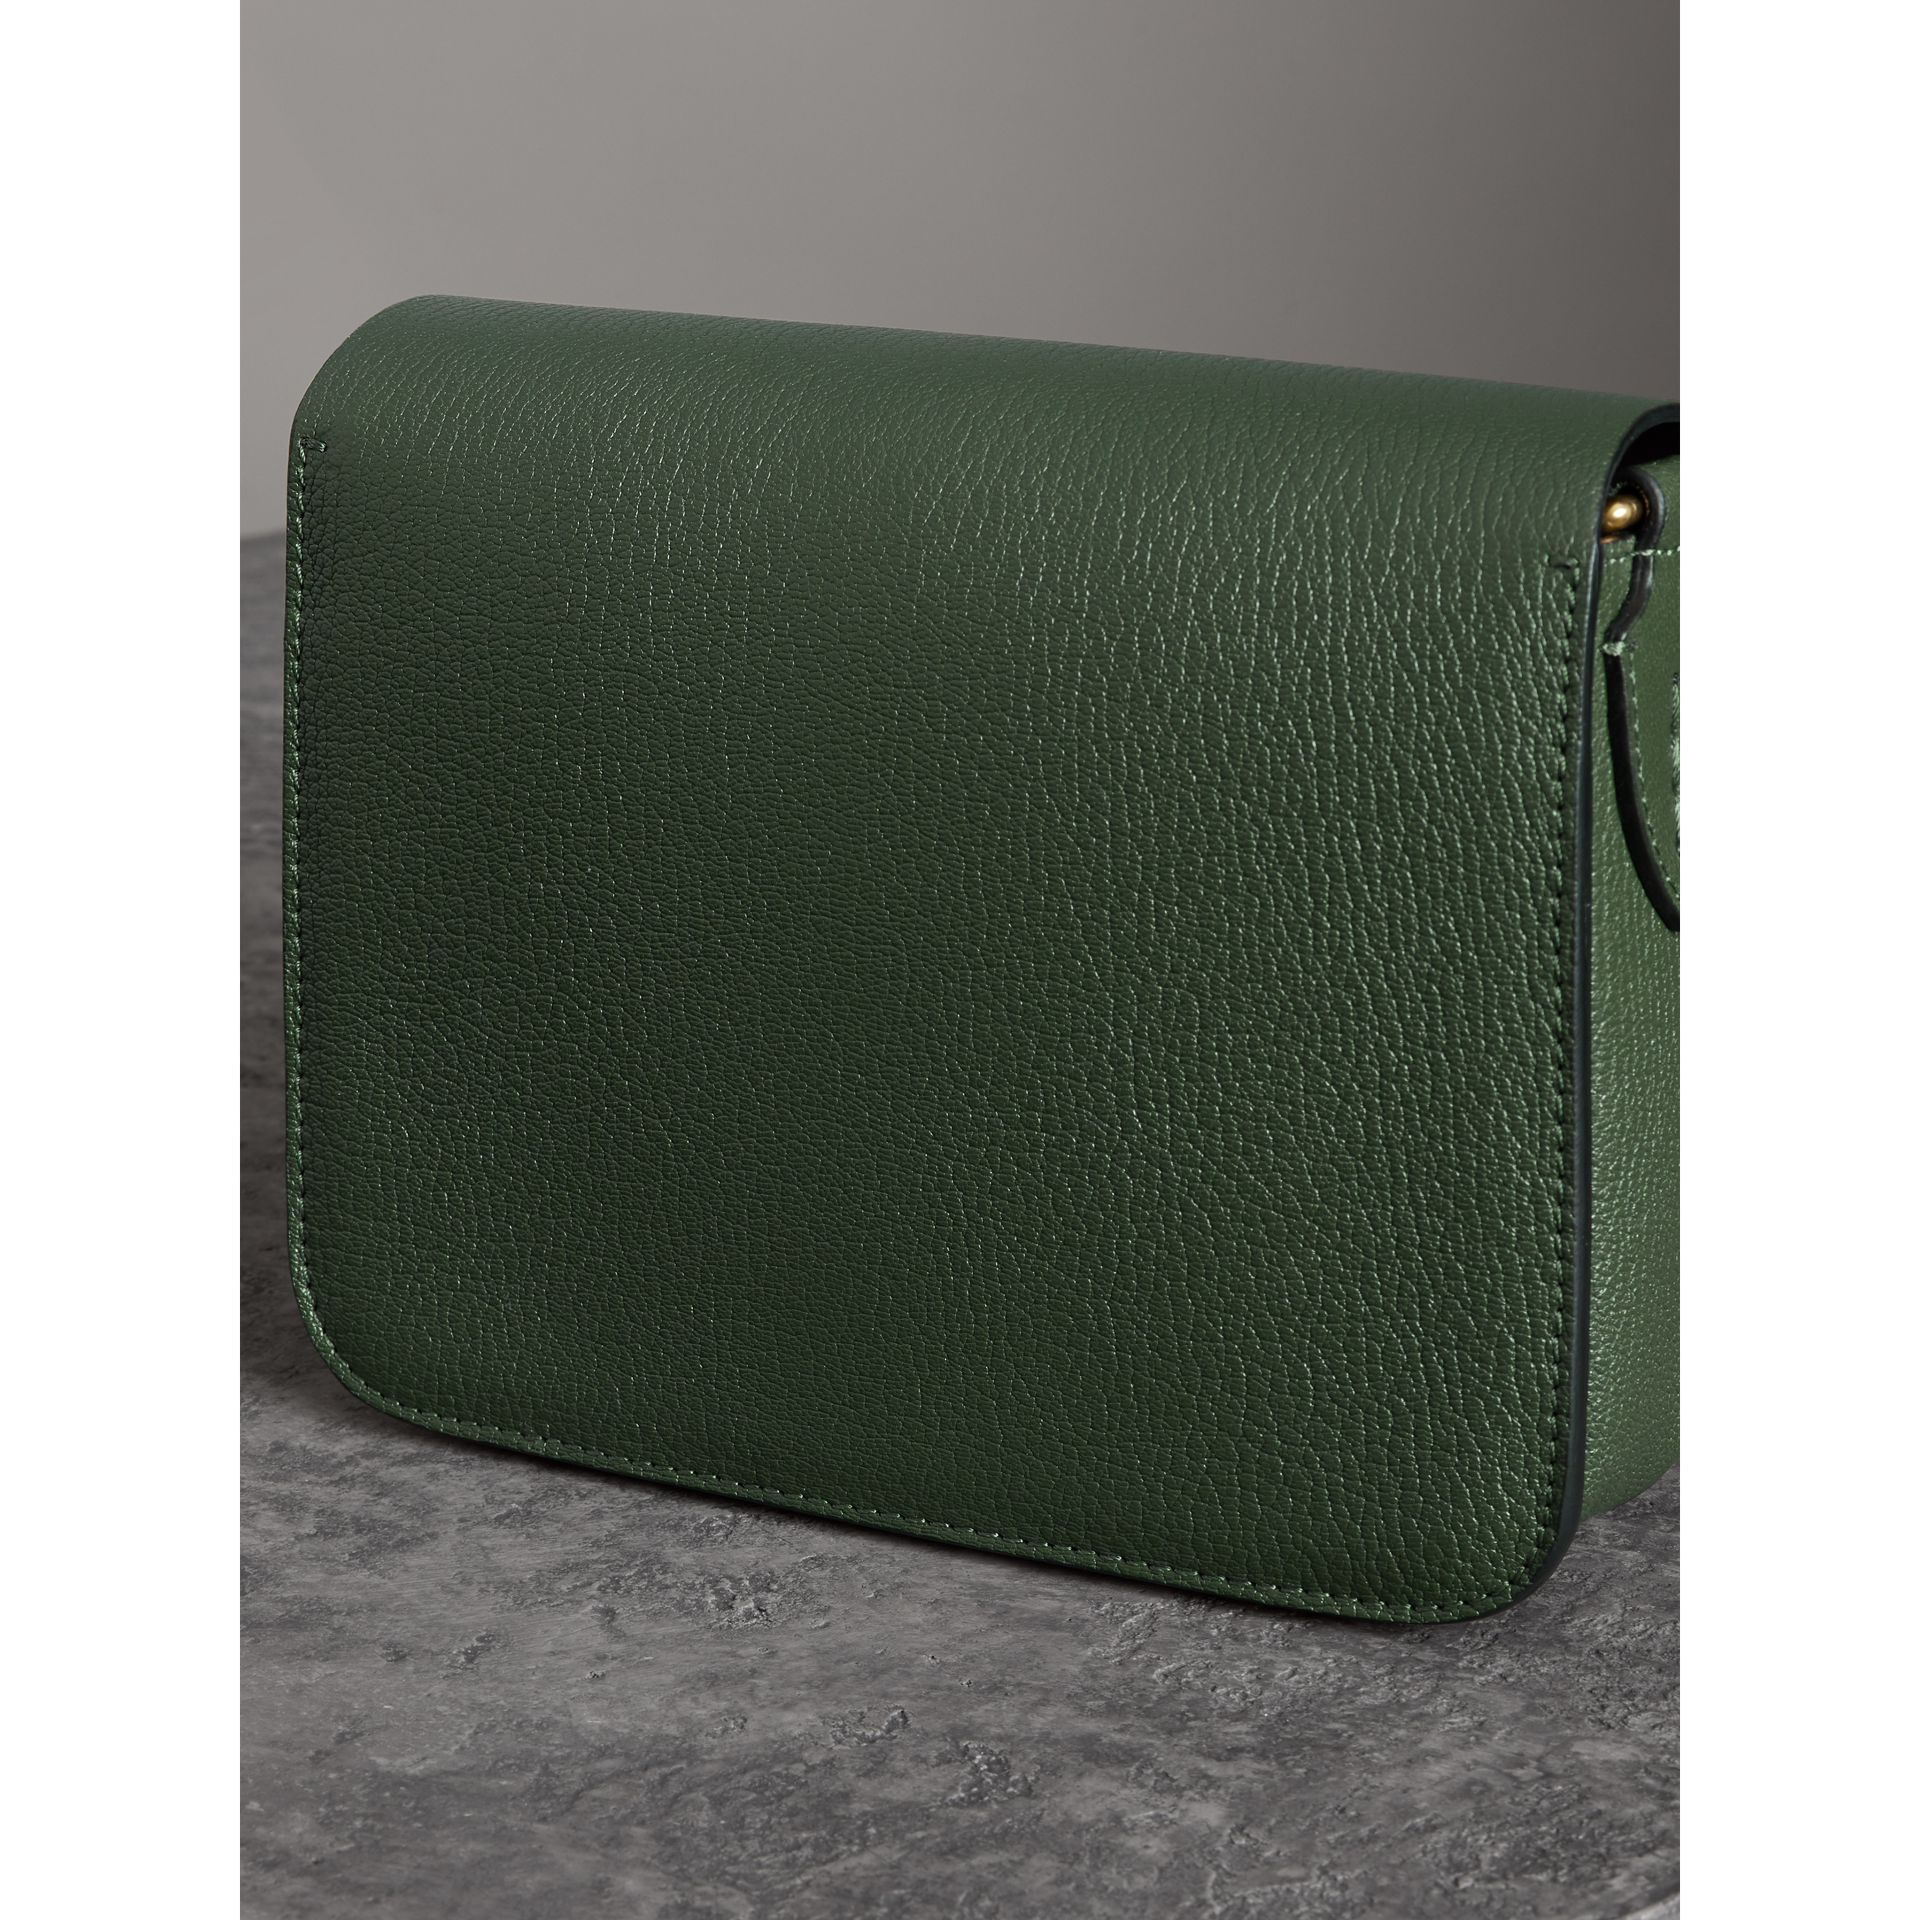 The Square Satchel in Leather in Dark Forest Green - Women | Burberry Australia - gallery image 2